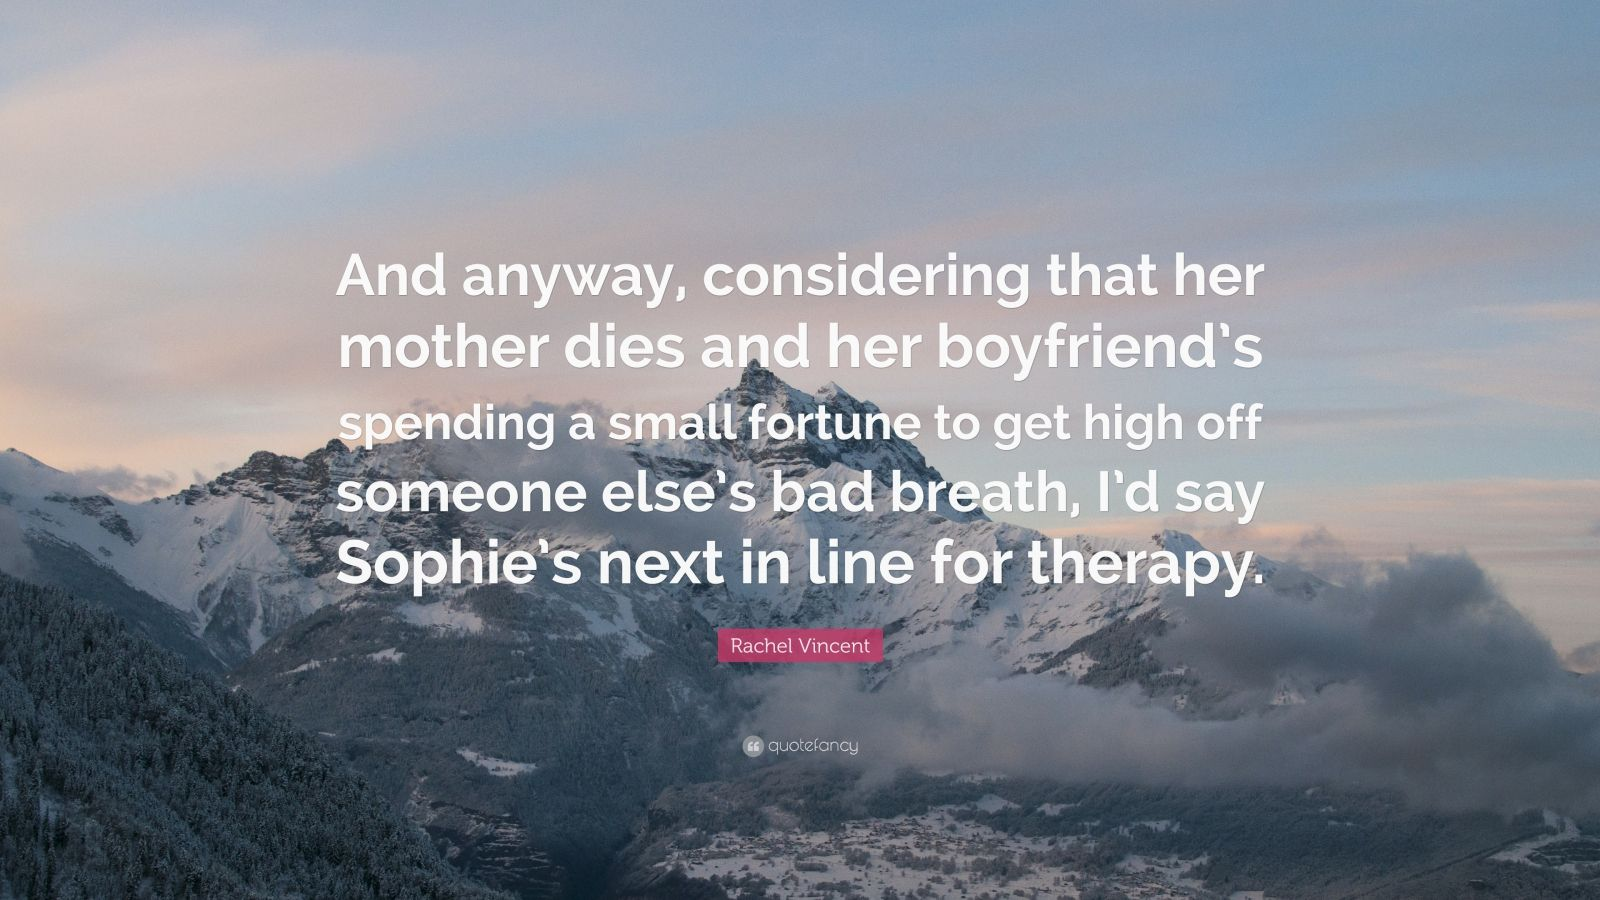 """Rachel Vincent Quote: """"And anyway, considering that her mother dies and her boyfriend's spending a small fortune to get high off someone else's bad breath, I'd say Sophie's next in line for therapy."""""""